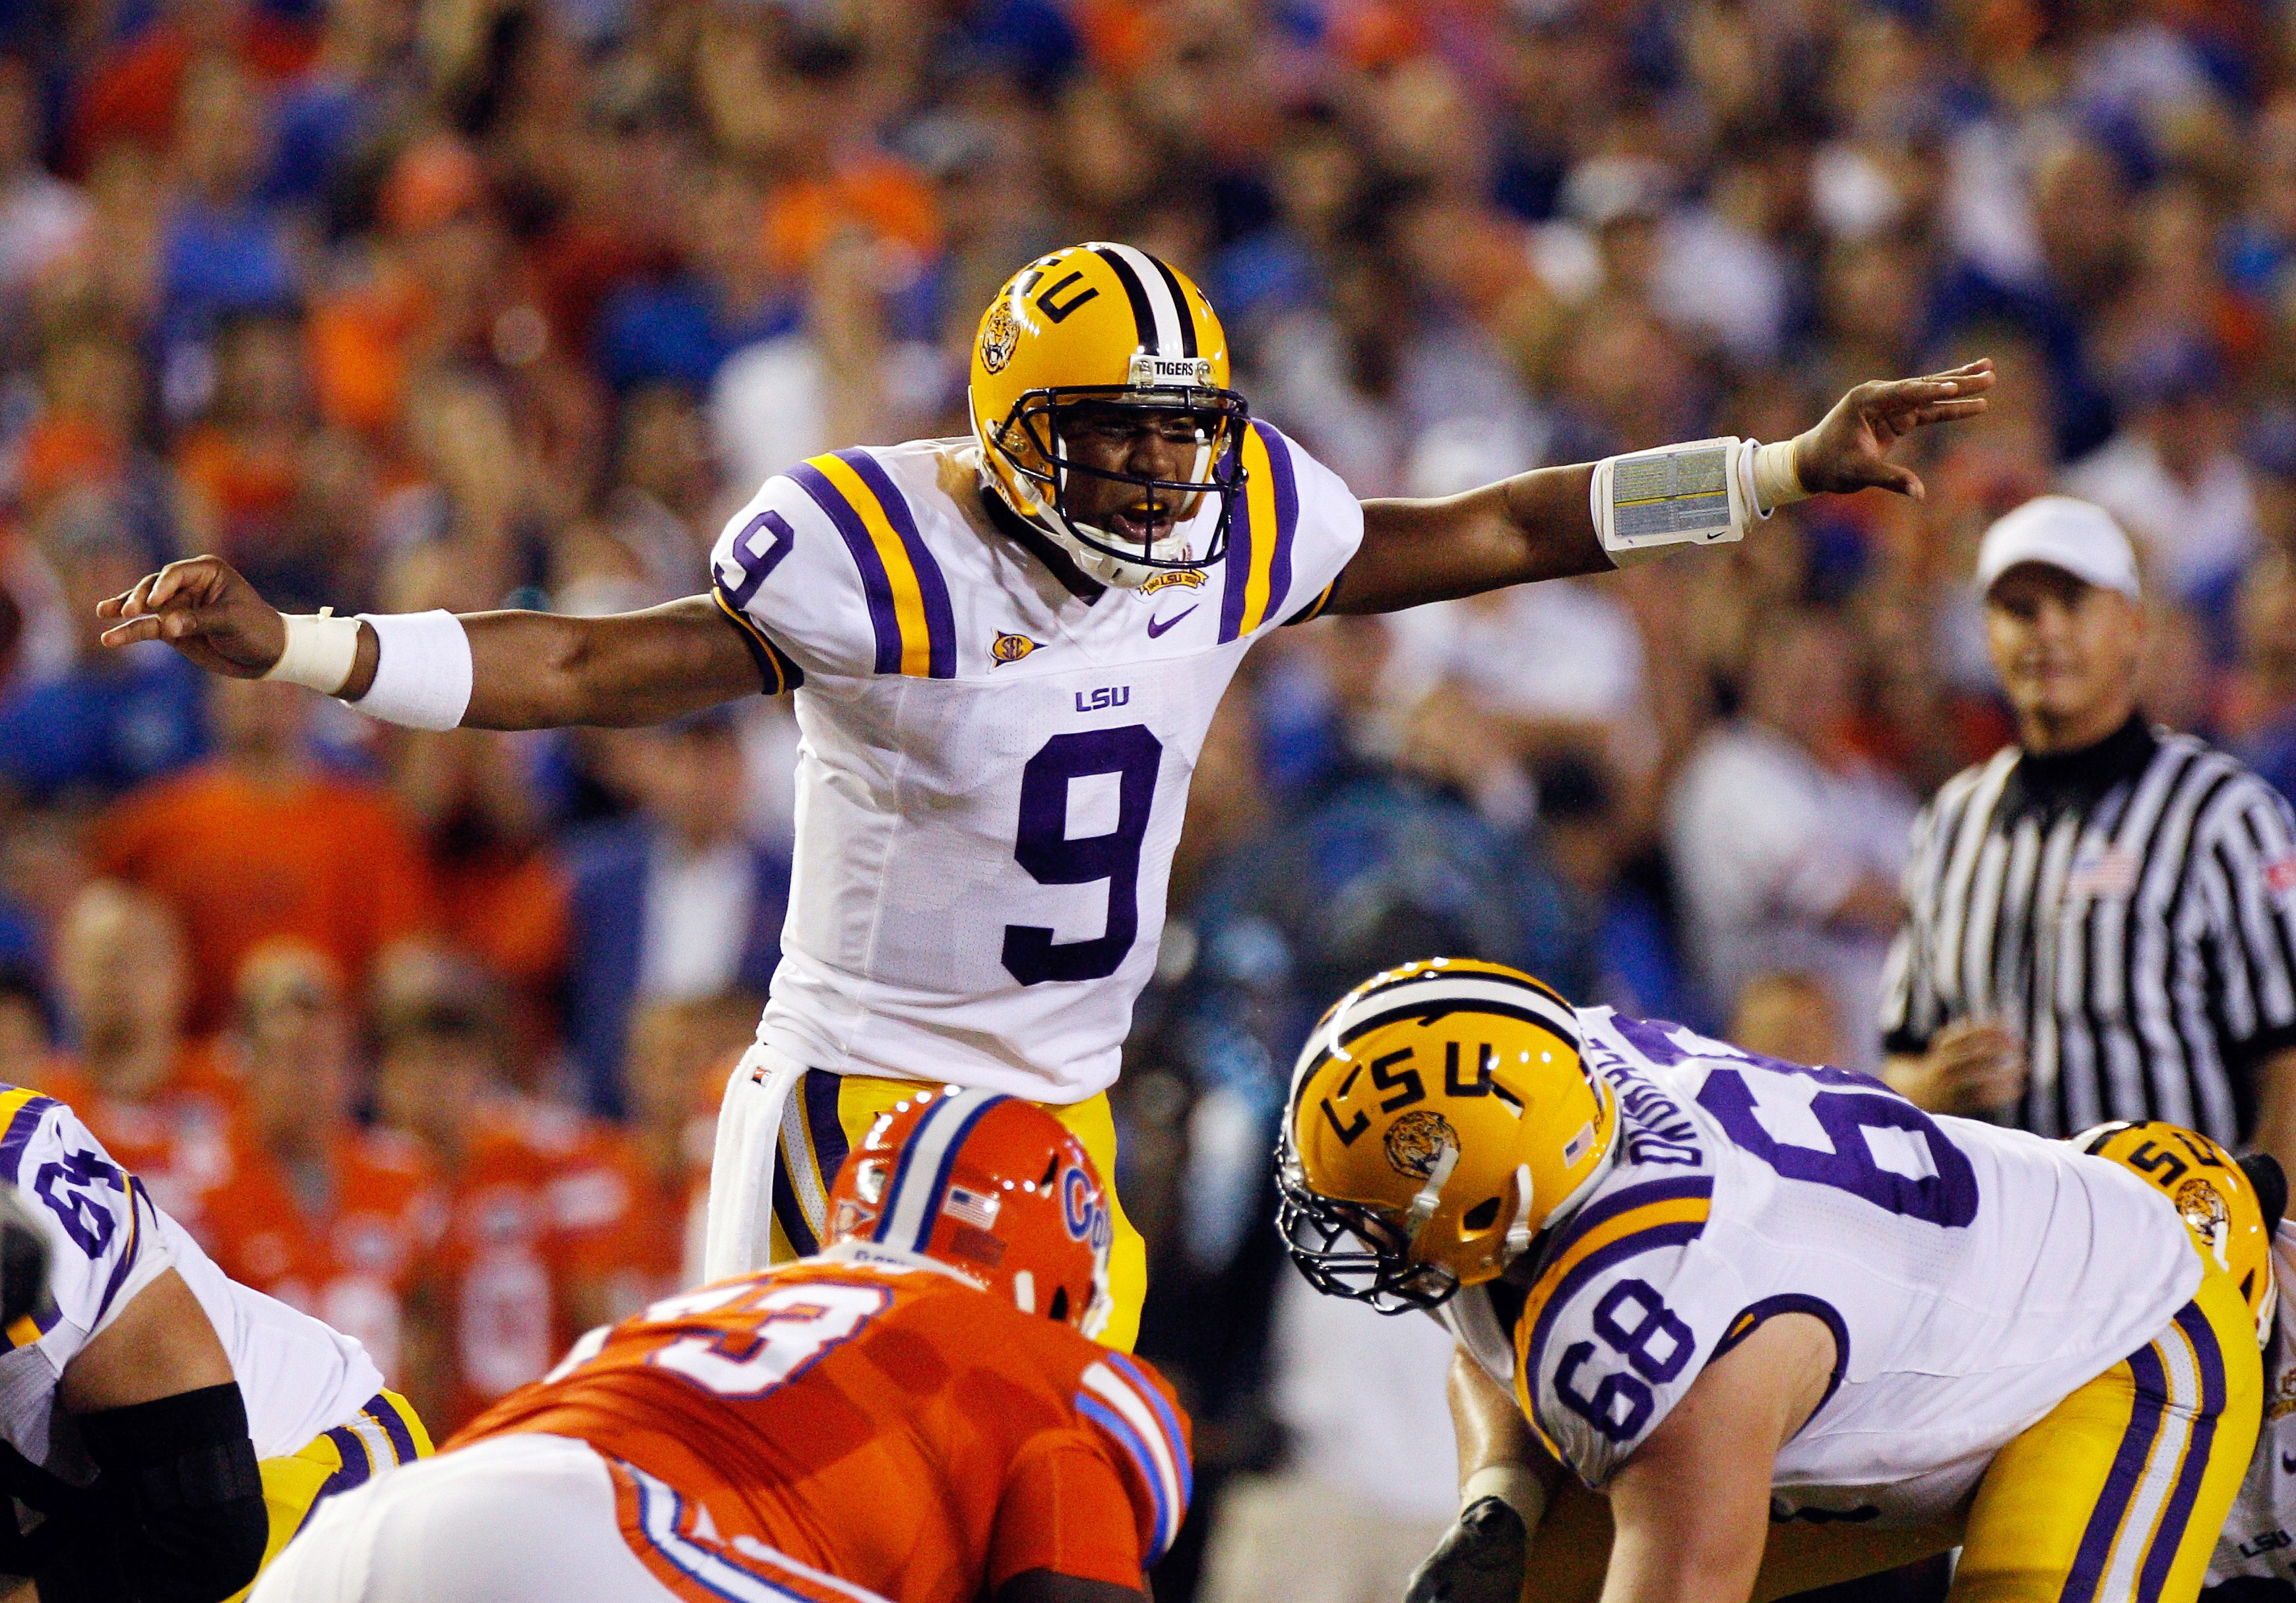 GAINESVILLE, FL - OCTOBER 09:  Quarterback Jordan Jefferson #9 of the Louisiana State University Tigers calls a signal during the game against the Florida Gators at Ben Hill Griffin Stadium on October 9, 2010 in Gainesville, Florida.  (Photo by Sam Greenw